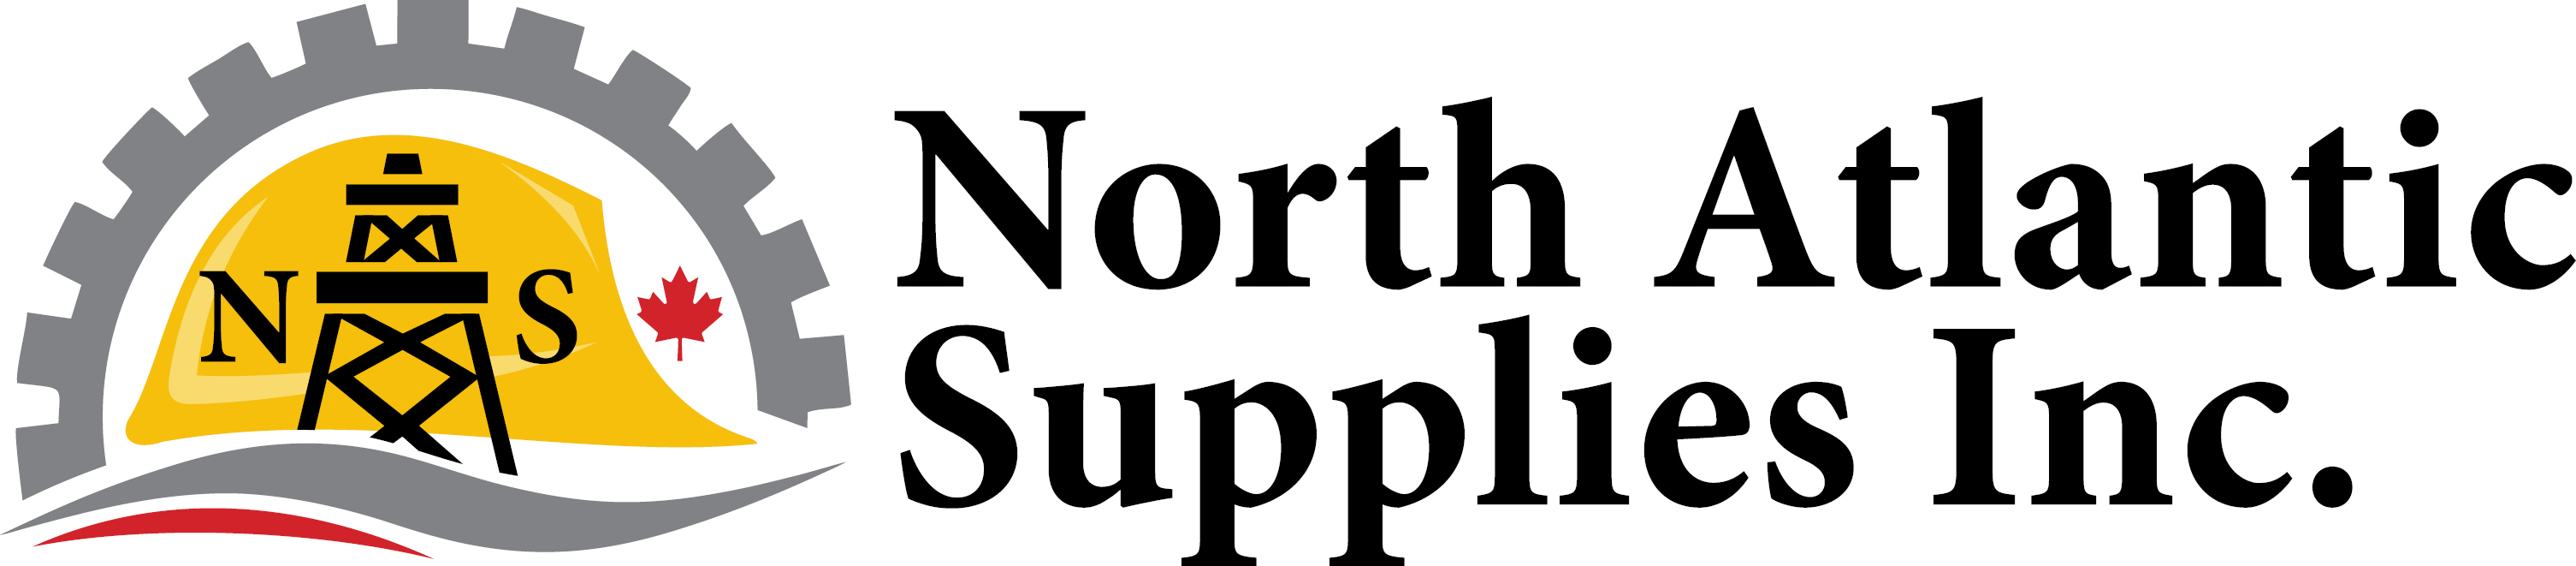 North Atlantic Supplies Inc.